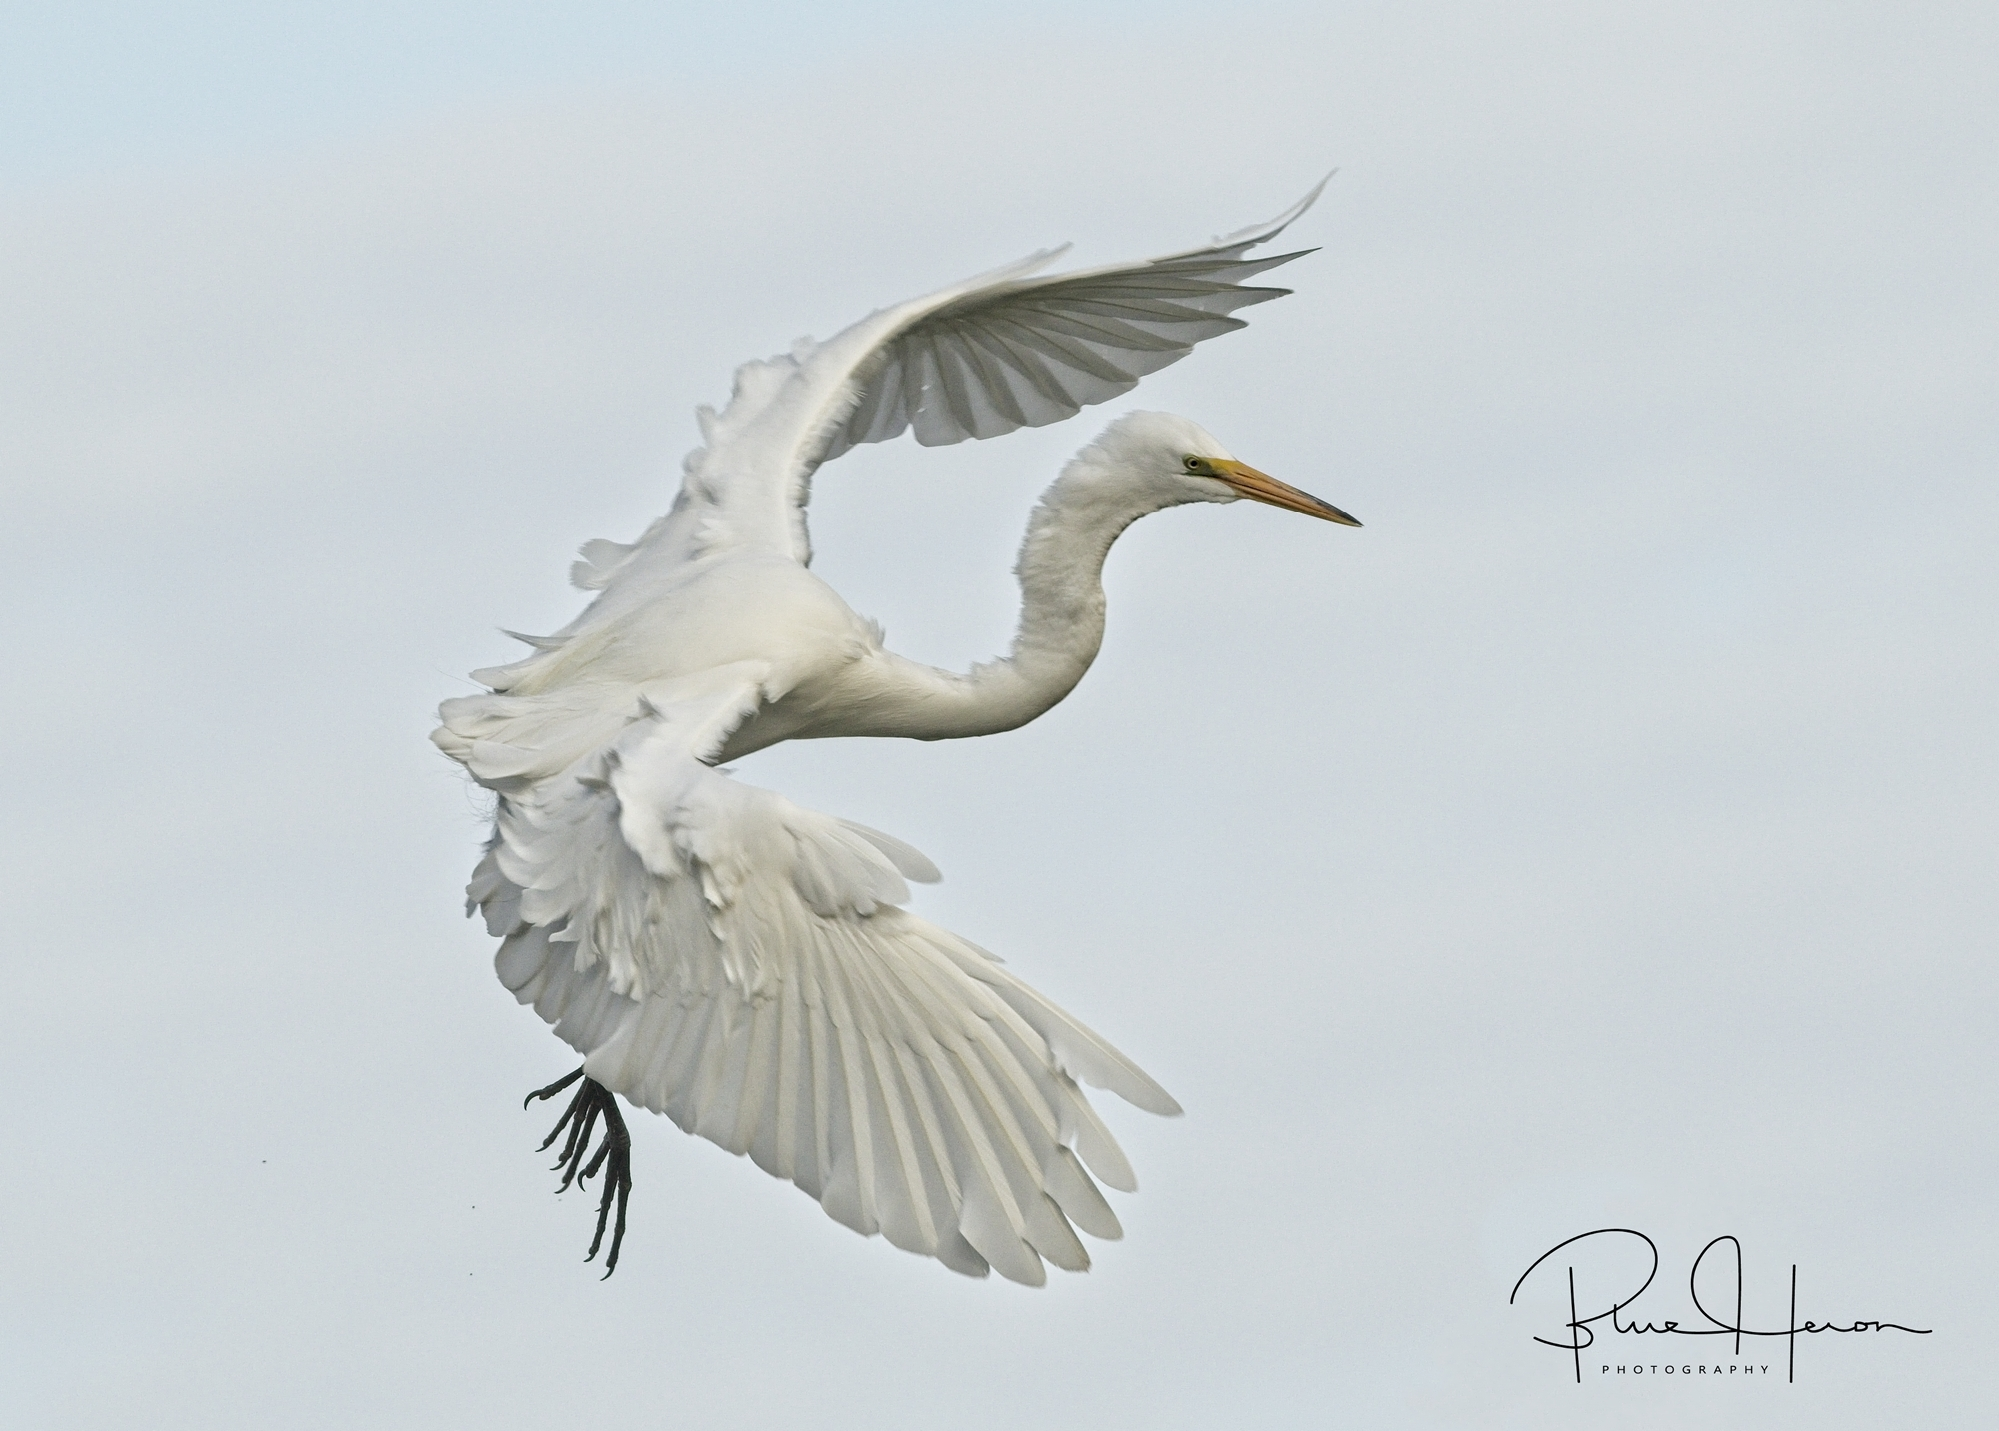 A Great Egret makes its turn to final approach at the rookery.